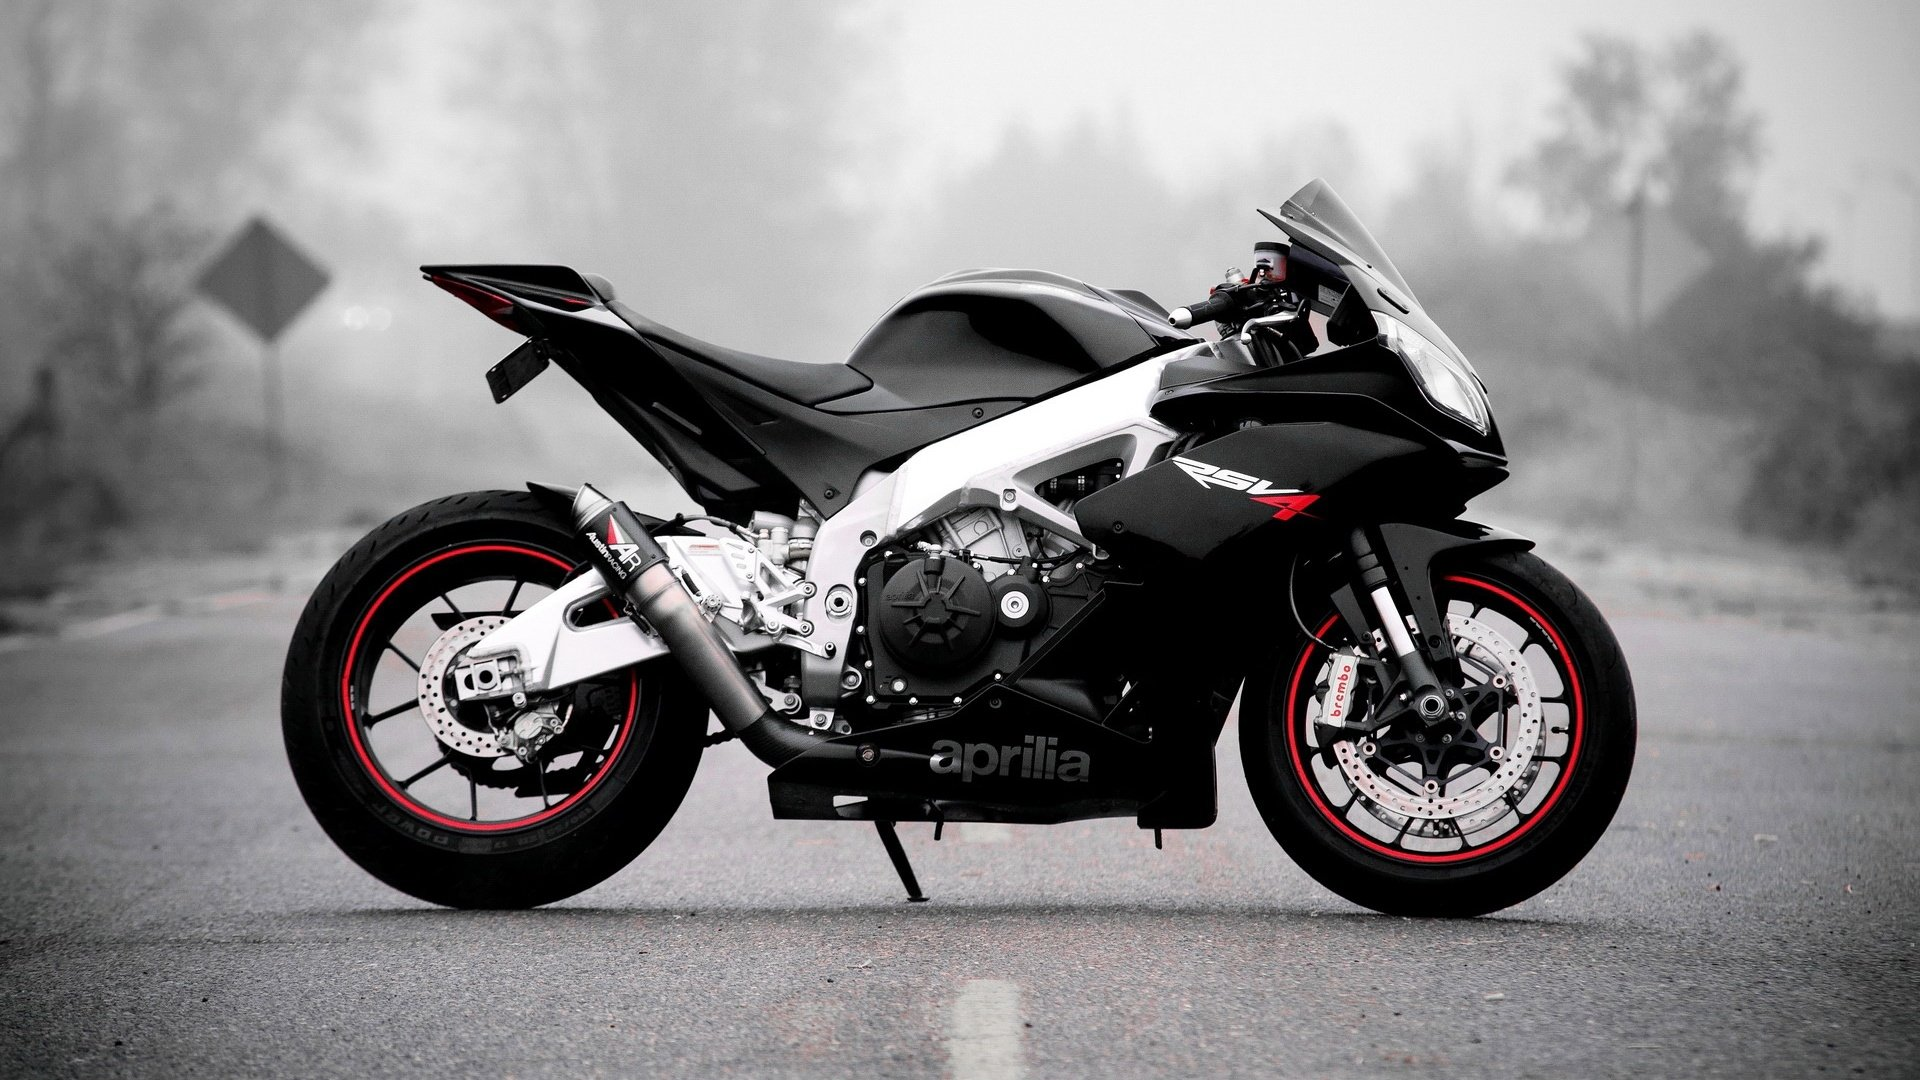 11 Aprilia RSV4 HD Wallpapers Background Images 1920x1080